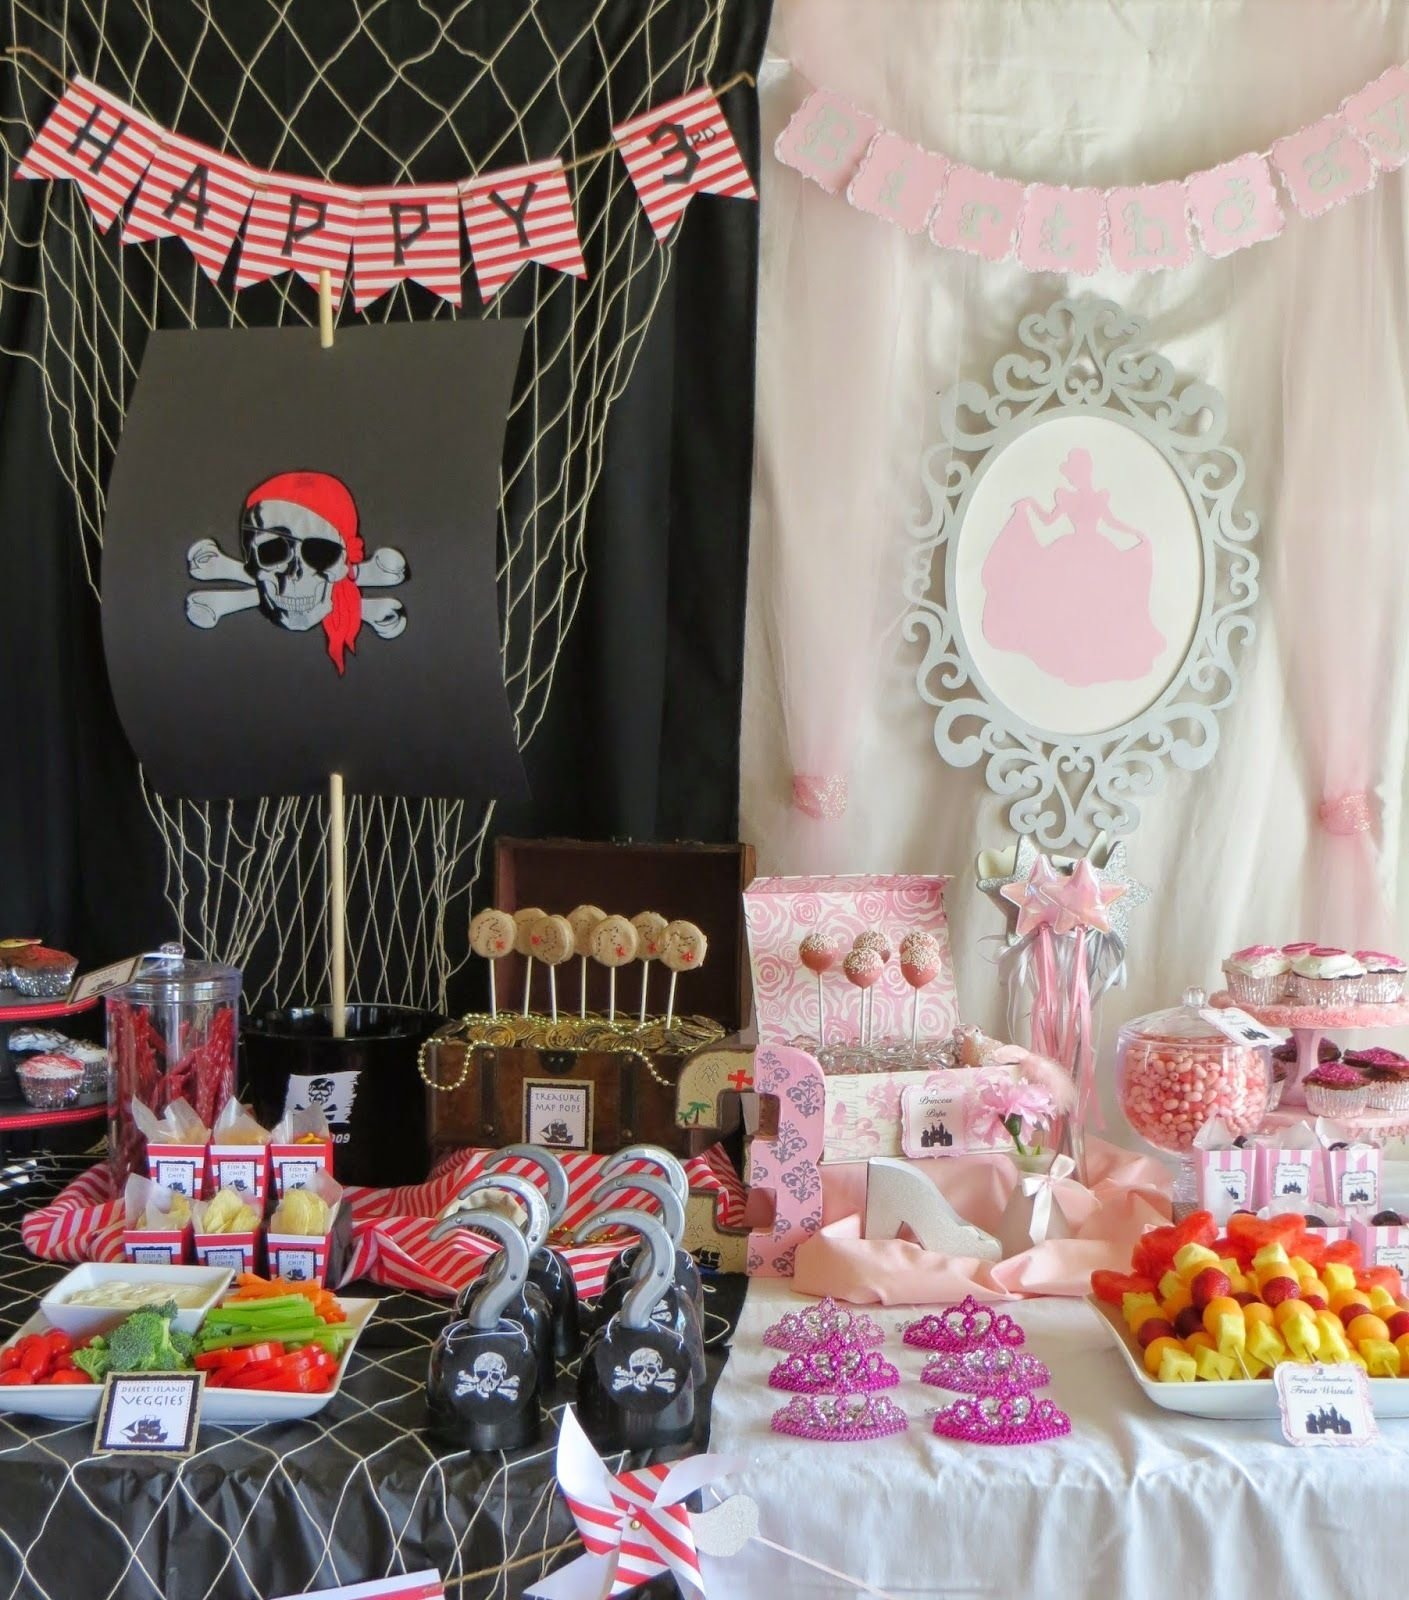 10 Awesome Princess And Pirate Party Ideas once upon a time and a yo ho ho princess and pirate birthday party 2020